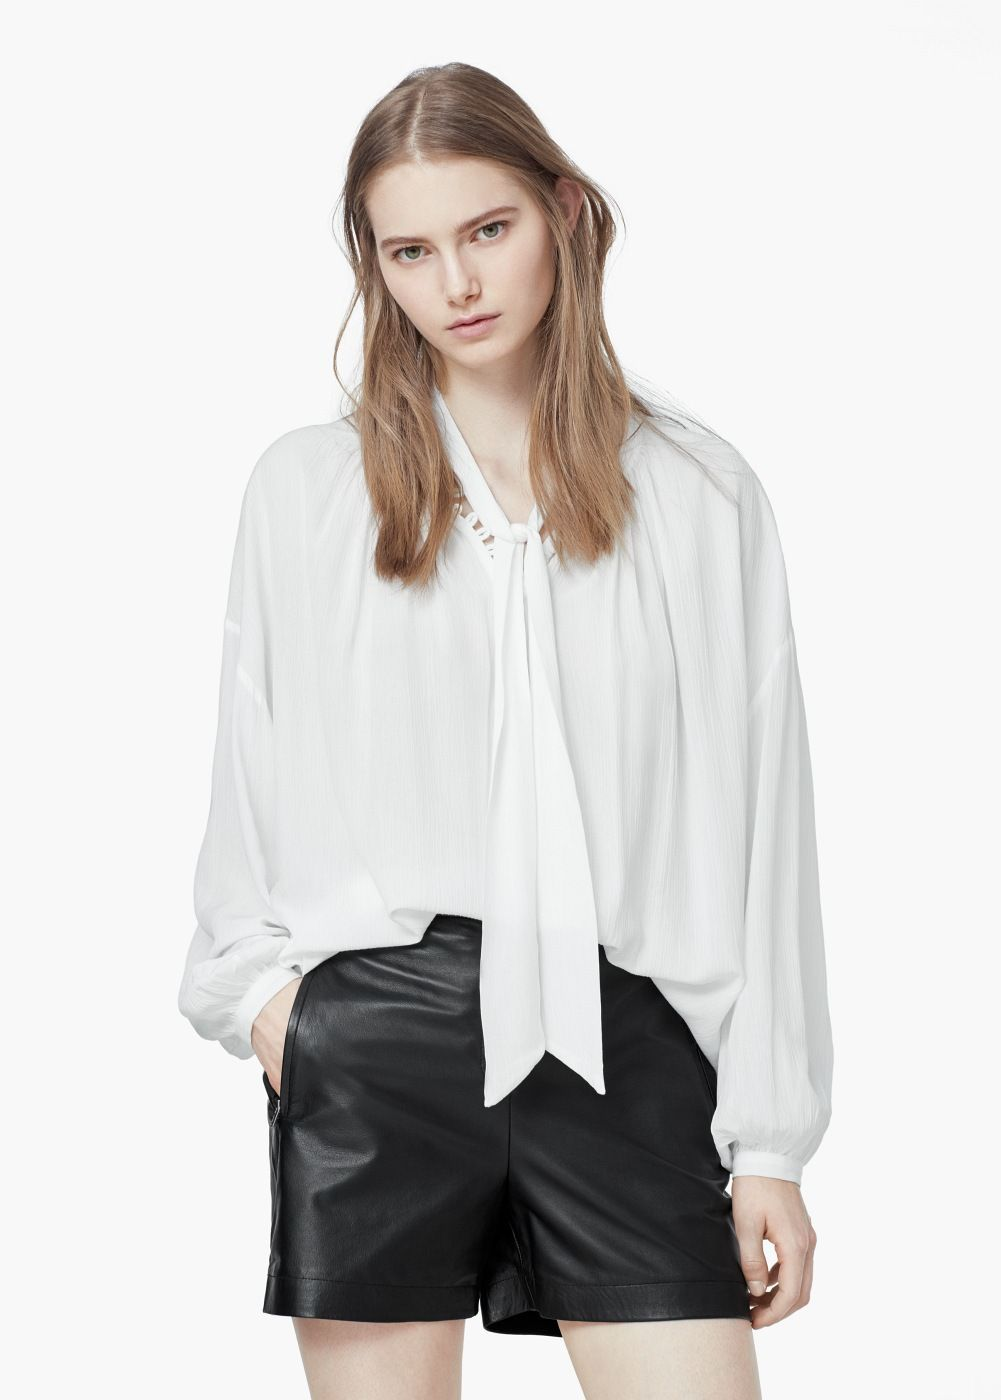 Tie-neck blouse - Woman in 2018   Fashion things - CITY Shopping ... 9eb18b1f7564